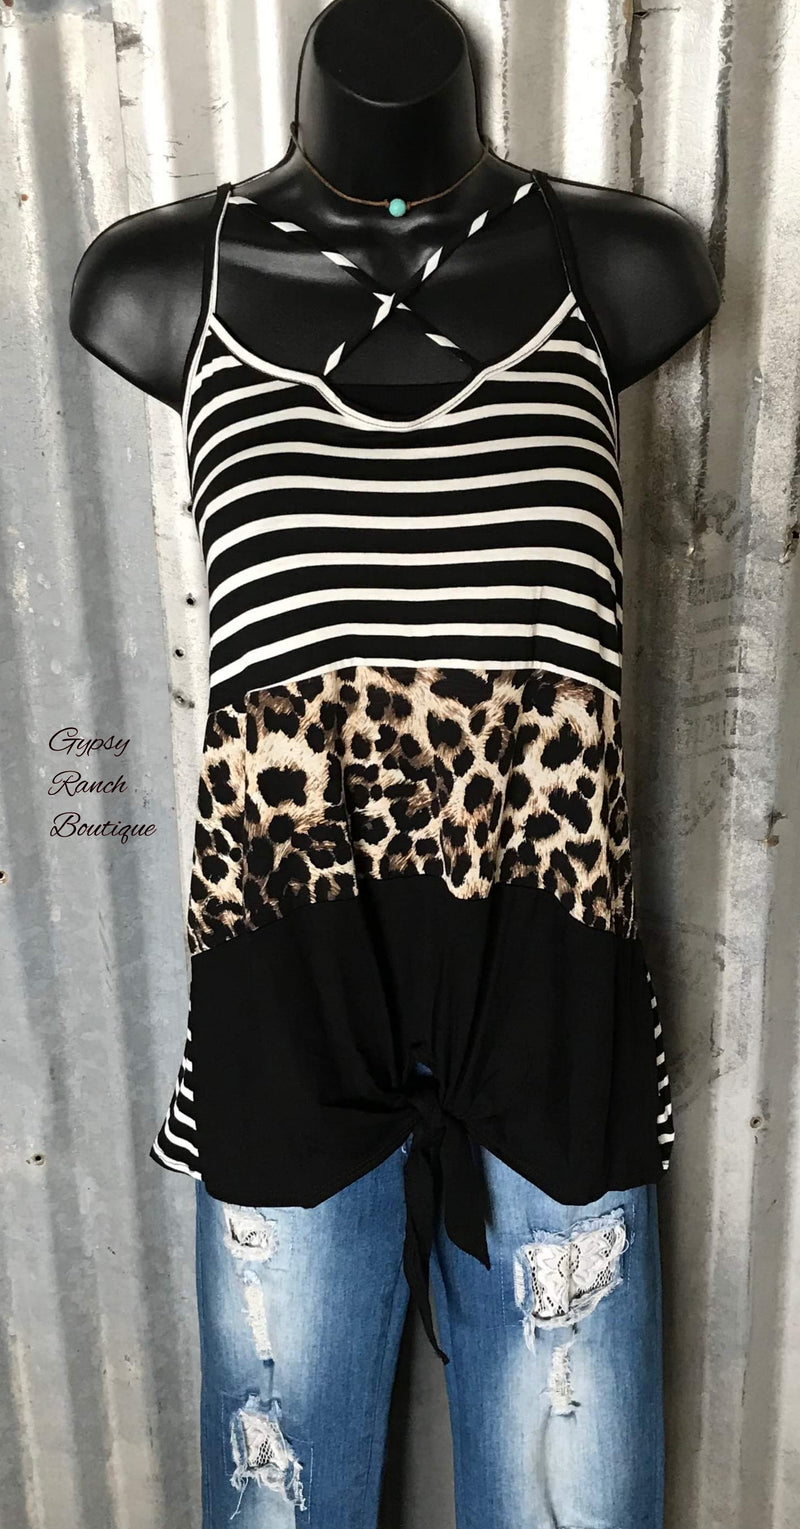 Del Rio Leopard Stripe Knot Tank Top - Also in Plus Size